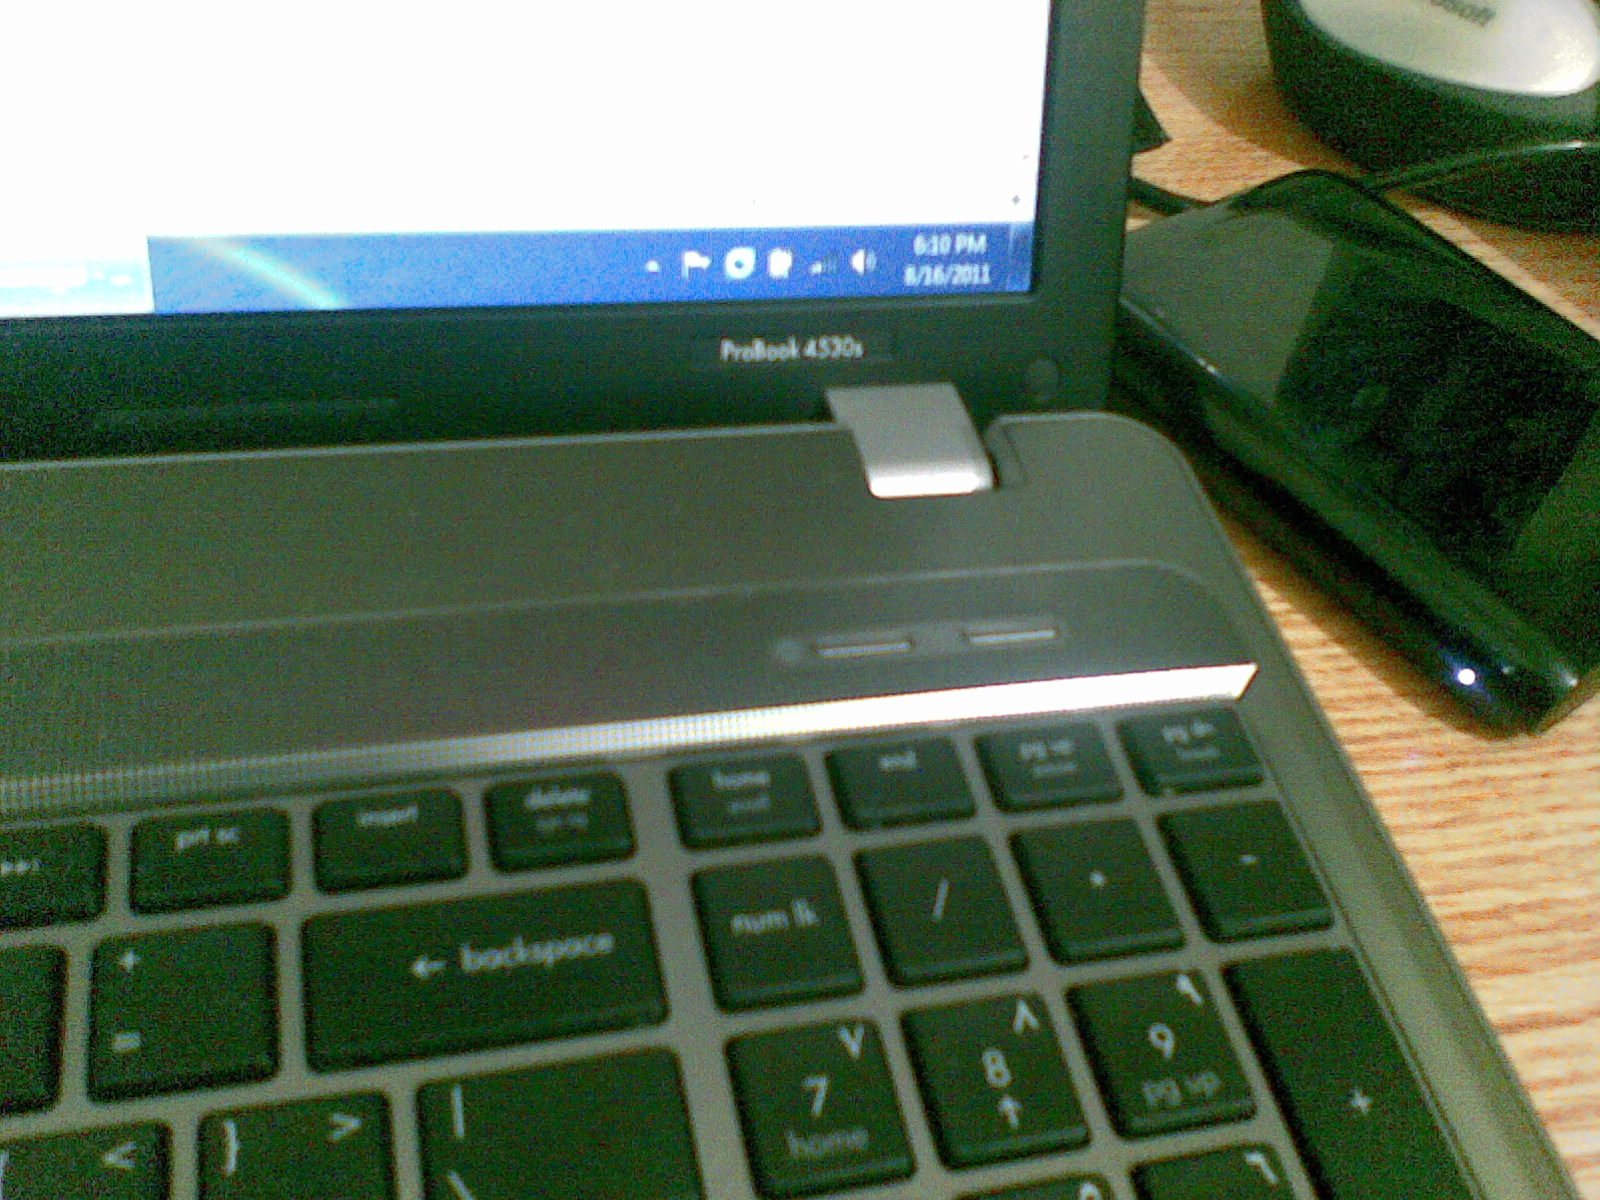 Hp probook 4530s wireless adapter drivers for windows xp.